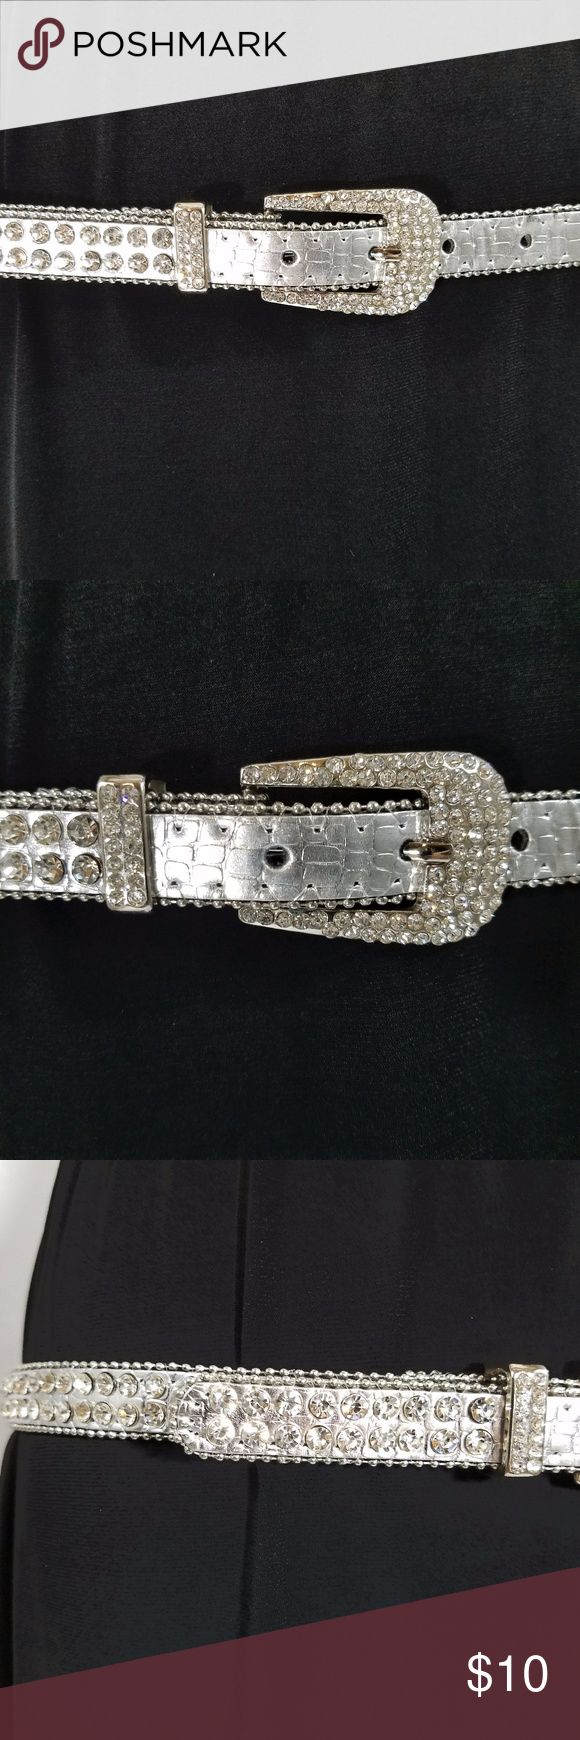 """Bling rhinestone sparkly belt Really cute belt with a lot of sparkly rhinestones.   In great condition with a little wear around the one hole.  41"""" Long in total 17.5"""" wide using the first hole 15.5"""" wide using the last hole Accessories Belts"""